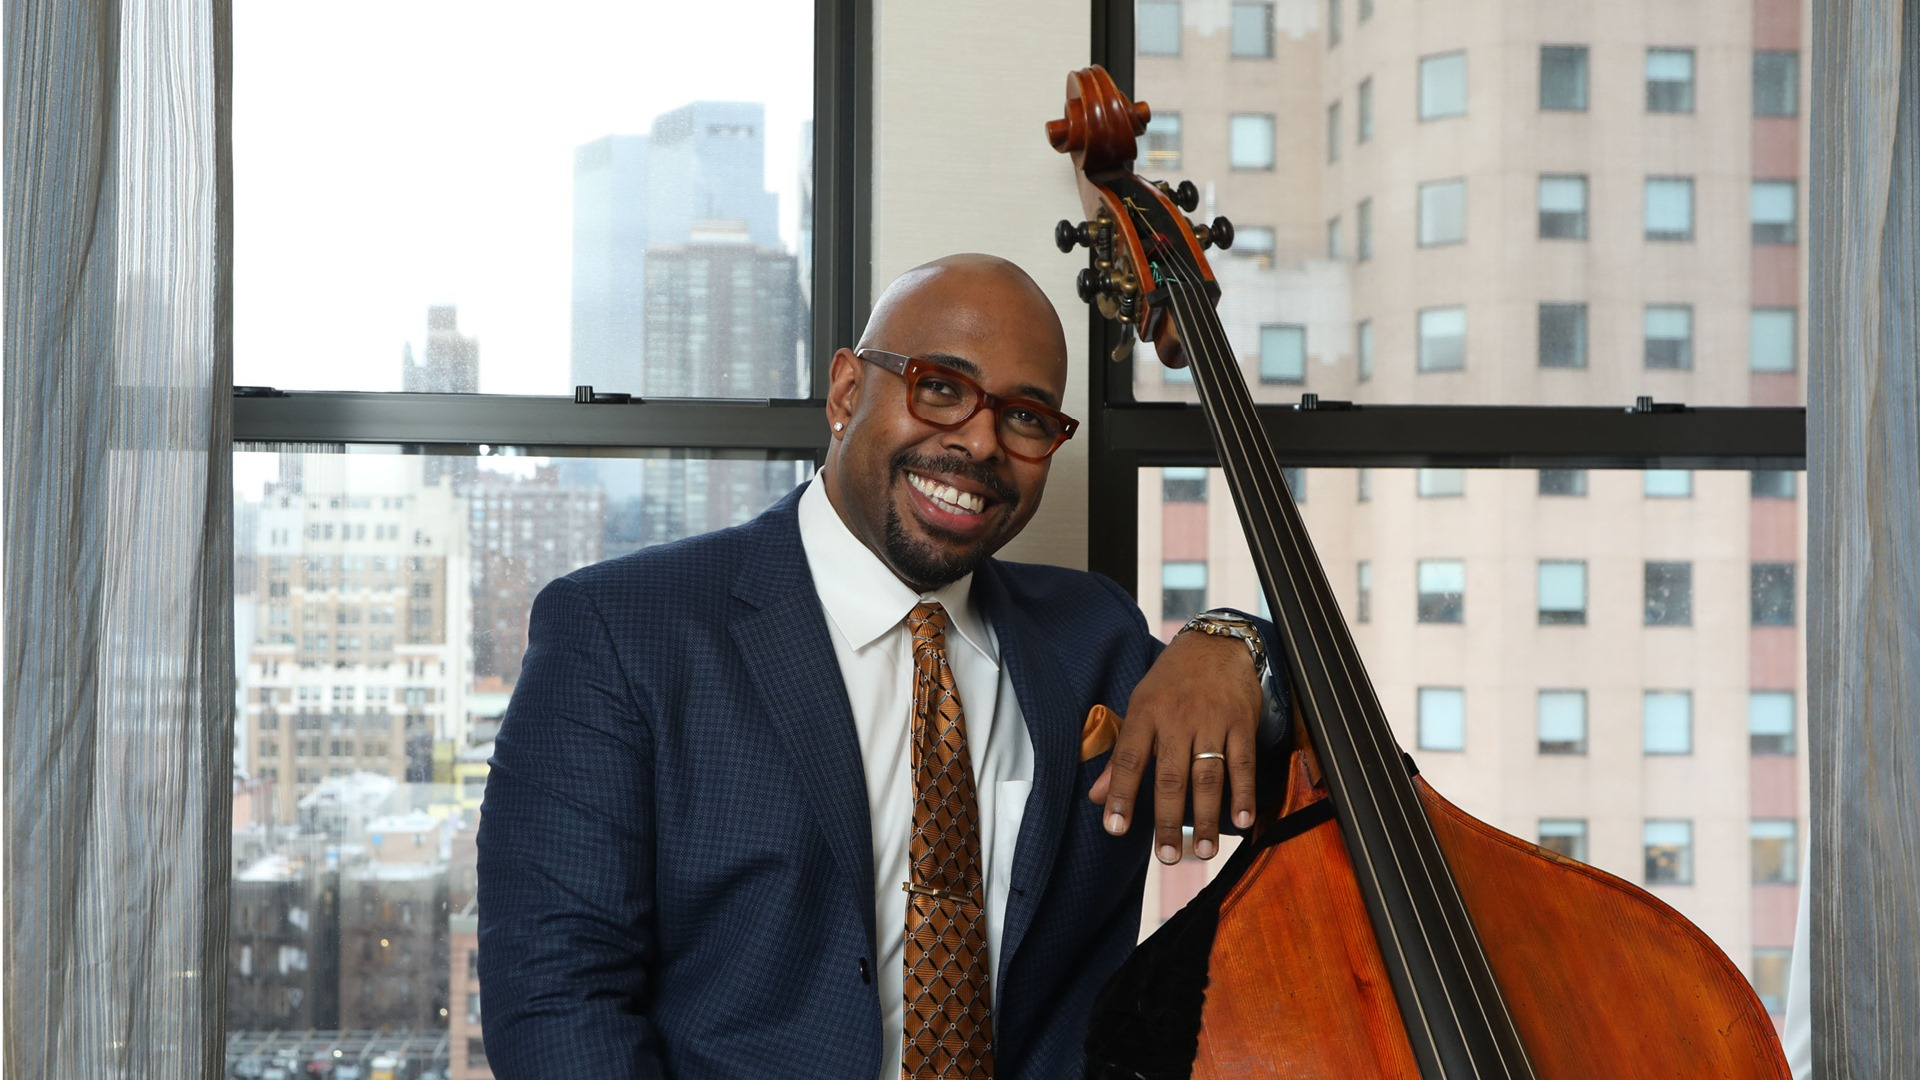 Inside the jazz note masterclass with Christian McBRide